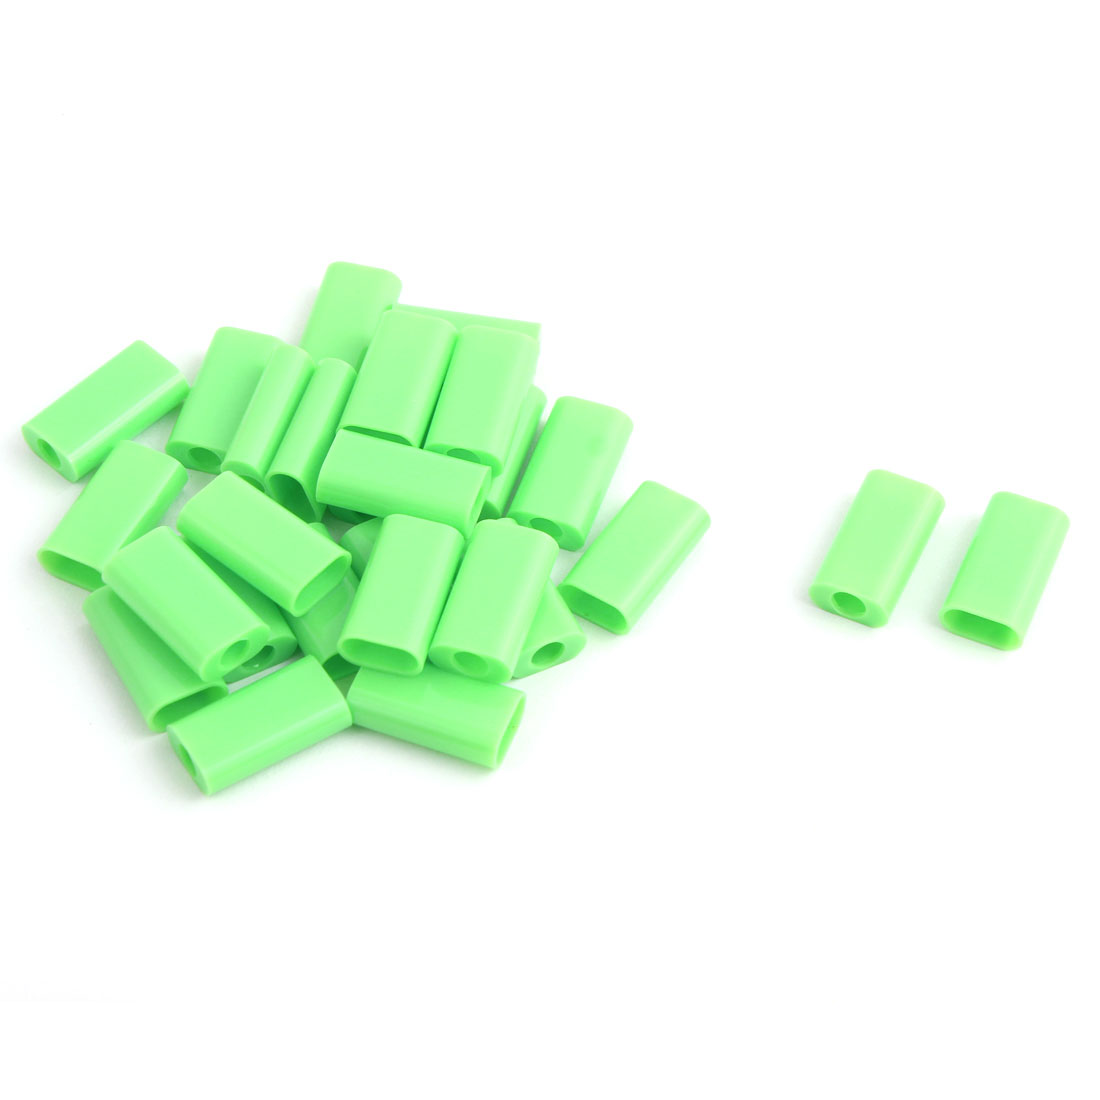 Phone Plastic Round Edge Linker Jack USB Port Connector Shell Parts Green 16x9x5mm 15 PCS